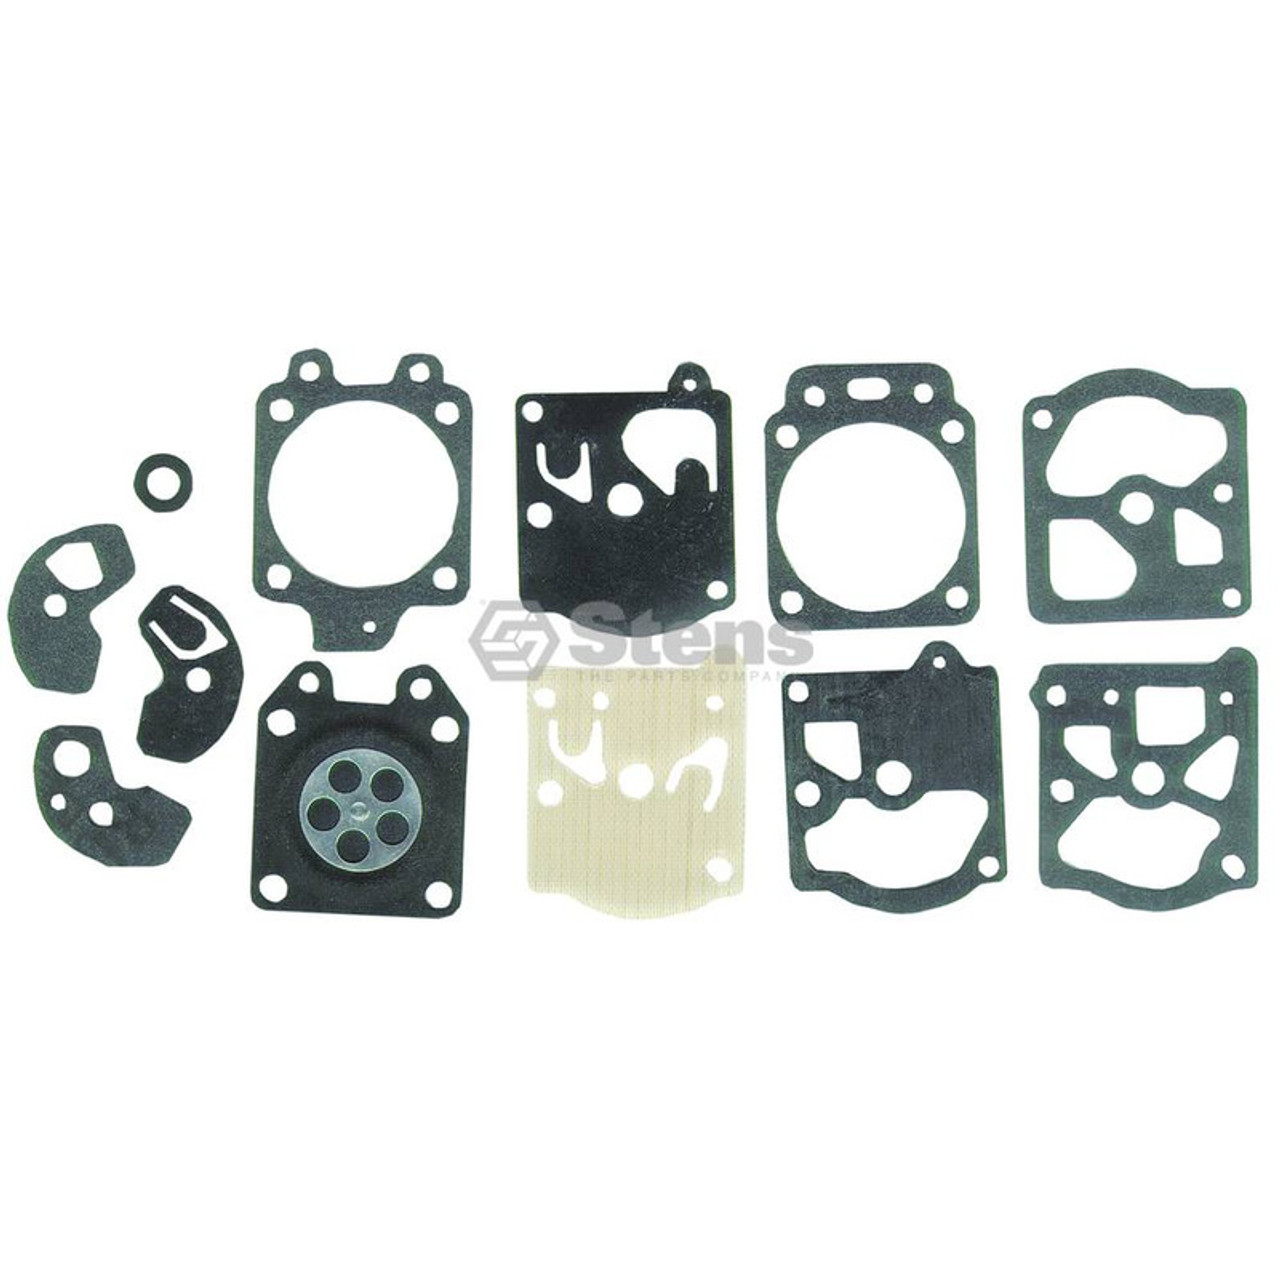 Carburetor Rebuild Kit for Stihl CS3000, CS301, CS341, 00000071073,  41330071060, 88880000090, 0000 007 1073, 4133 007 1060, 8888 000 0090